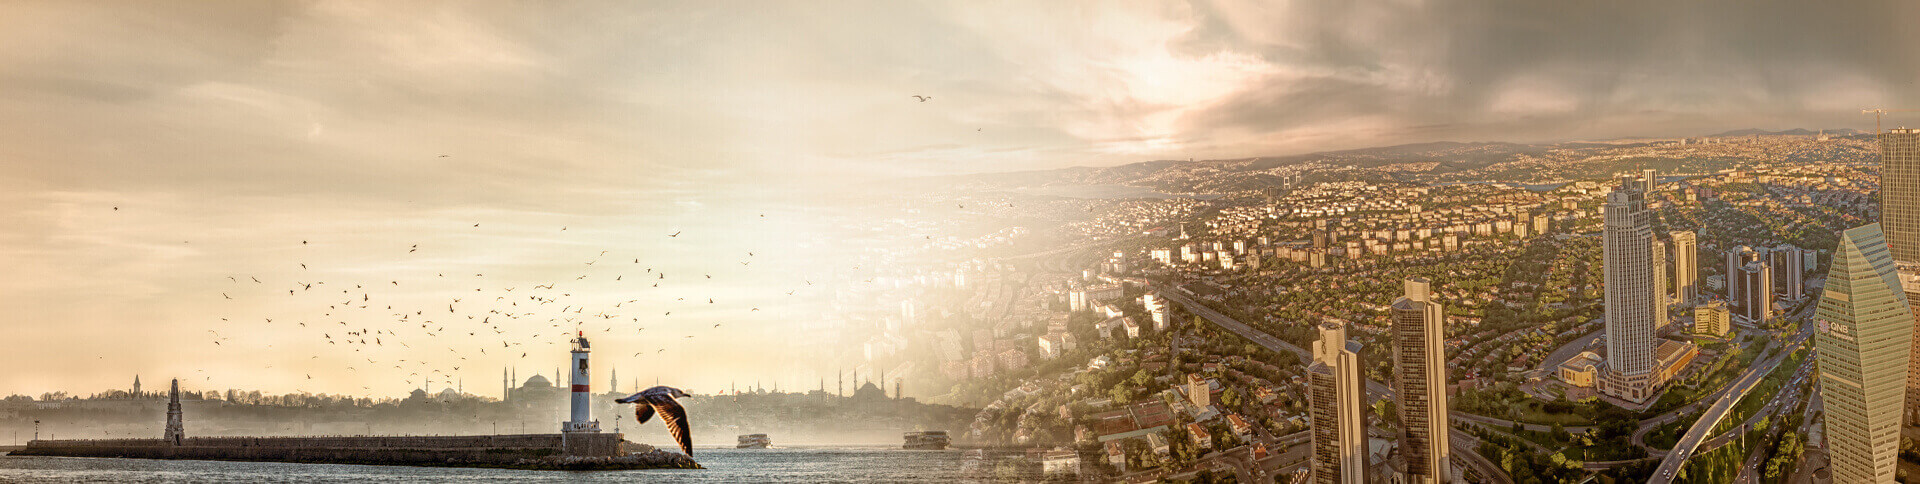 Istanbul Real Estate - Property Turkey - Turkish Citizenship | MELARES